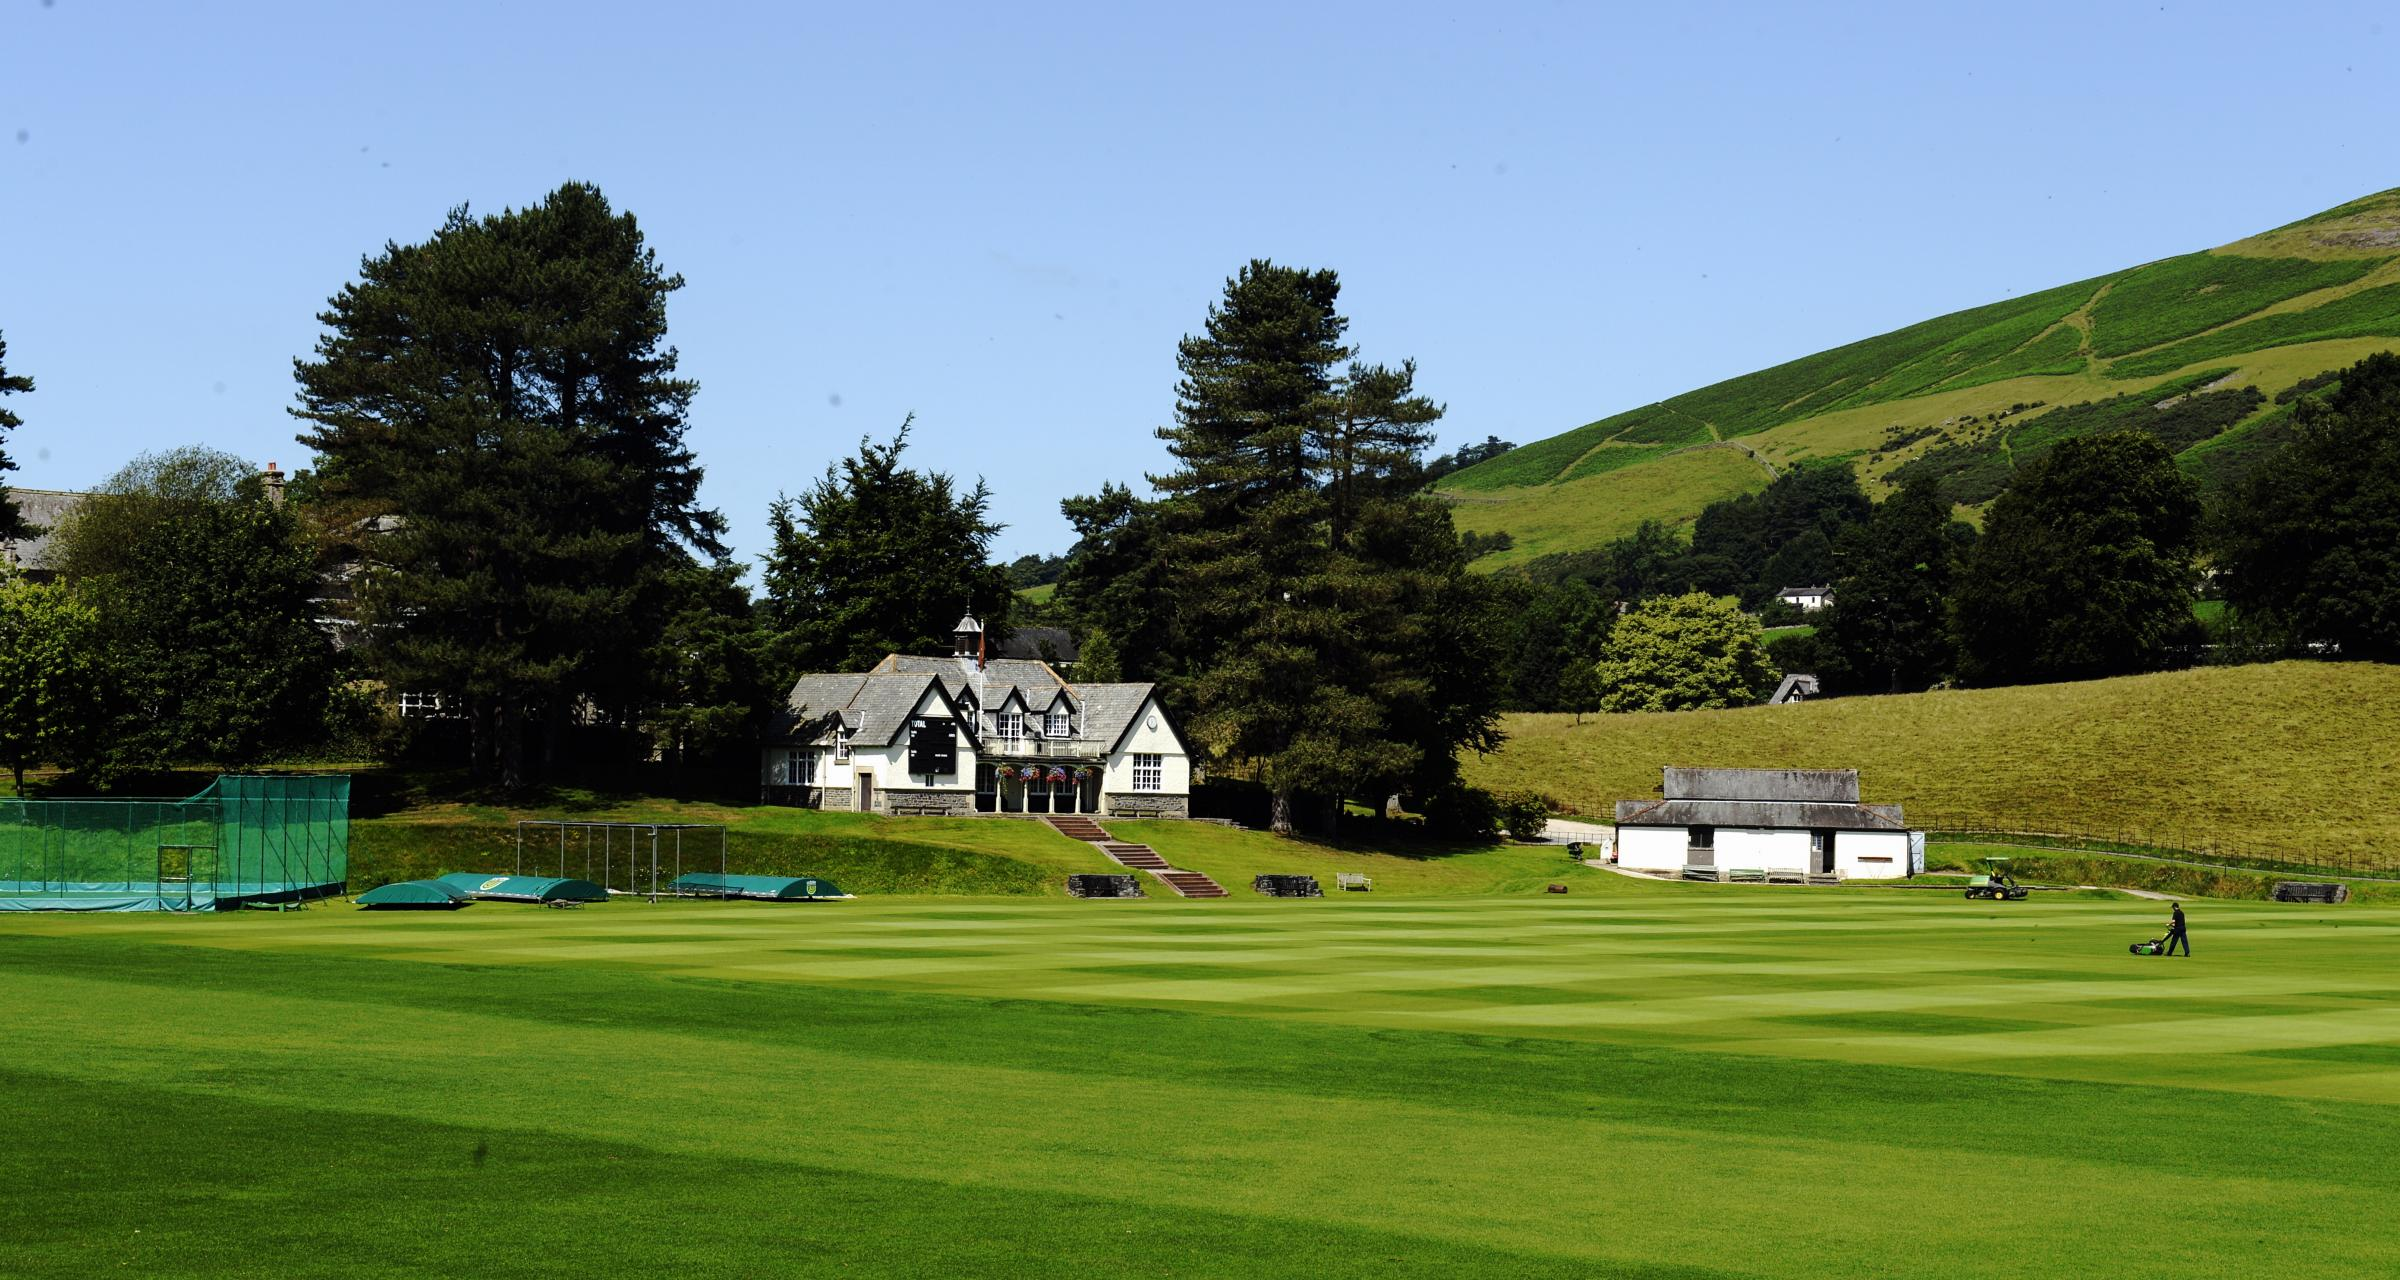 Sedbergh School, which will host the Lancashire v Durham clash. Pic: Jon Granger